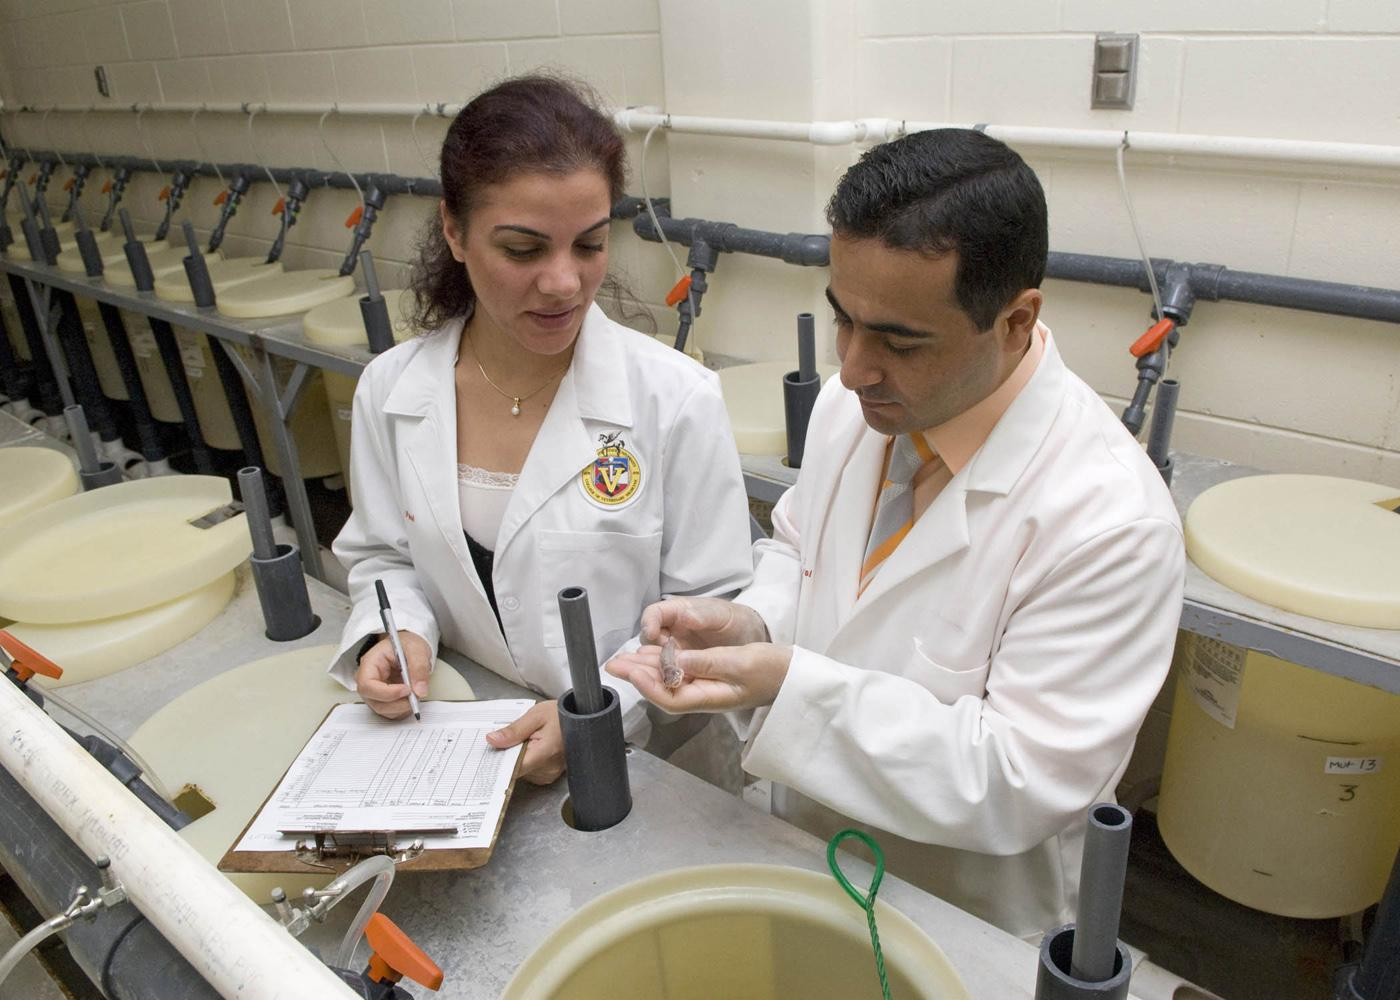 Attila Karsi, research assistant professor at Mississippi State University's College of Veterinary Medicine, and Nagihan Gulsoy, a visiting professor, examine a catfish fingerling with the disease enteric septicemia, a bacterial disease that costs the catfish industry millions of dollars each year. (Photo by Tom Thompson)